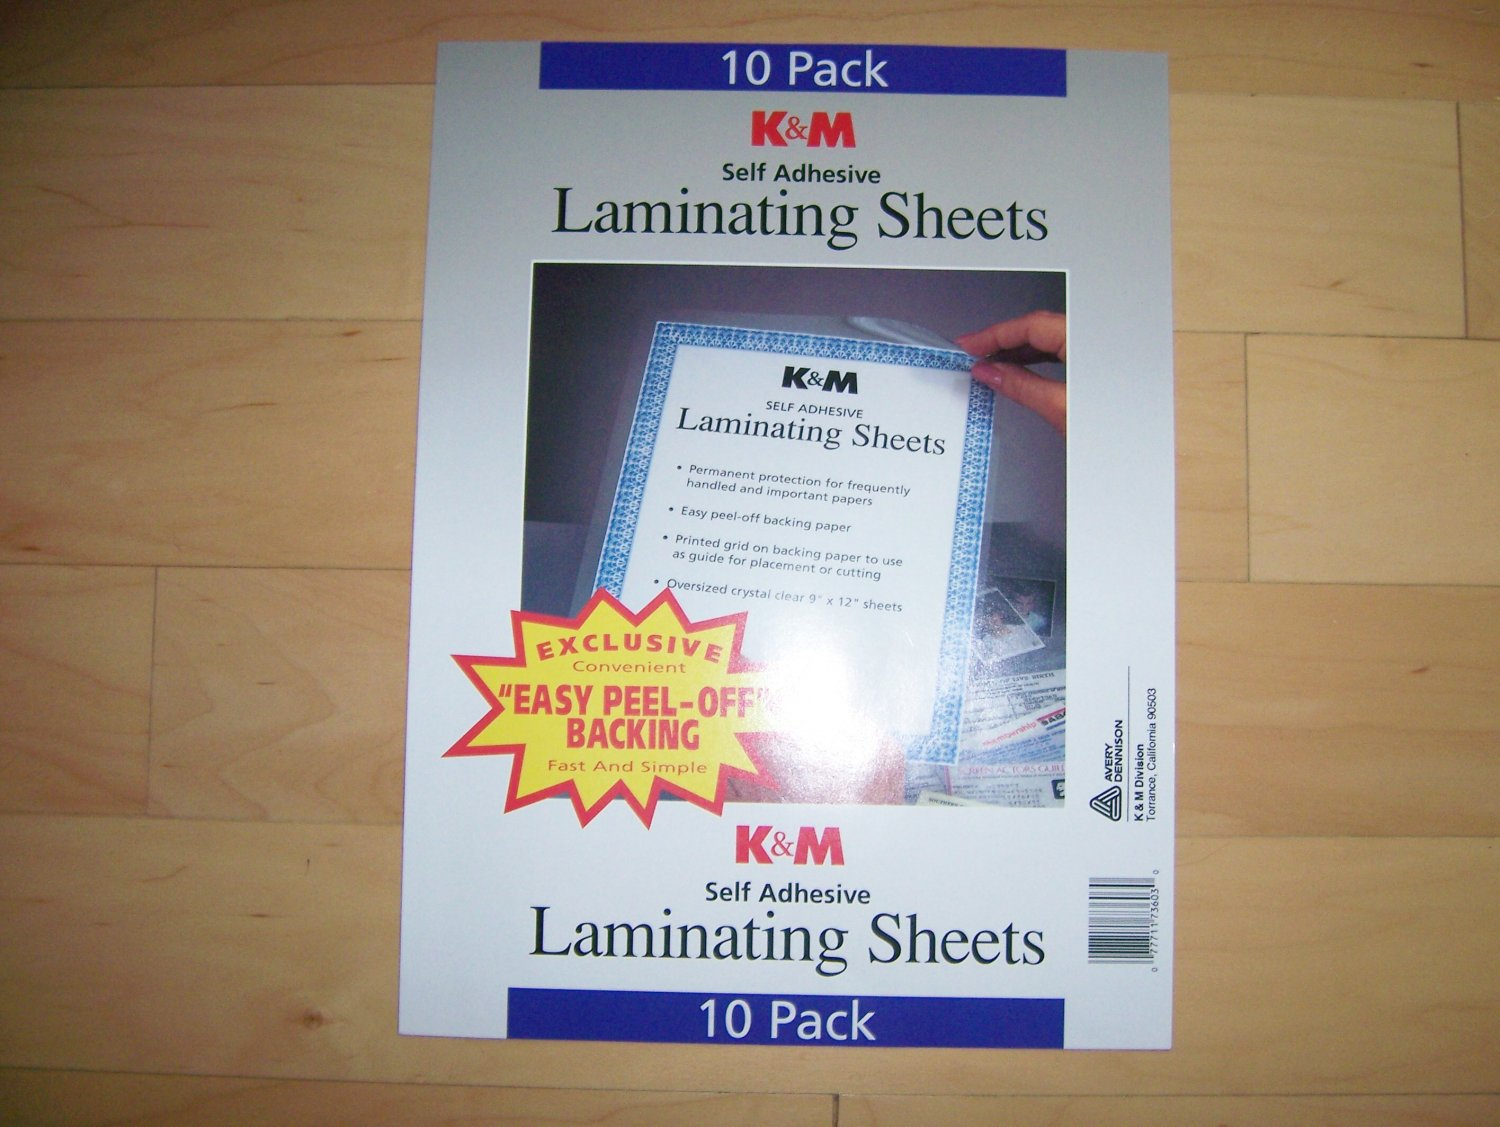 Laminating Sheets By K&M  BNK983